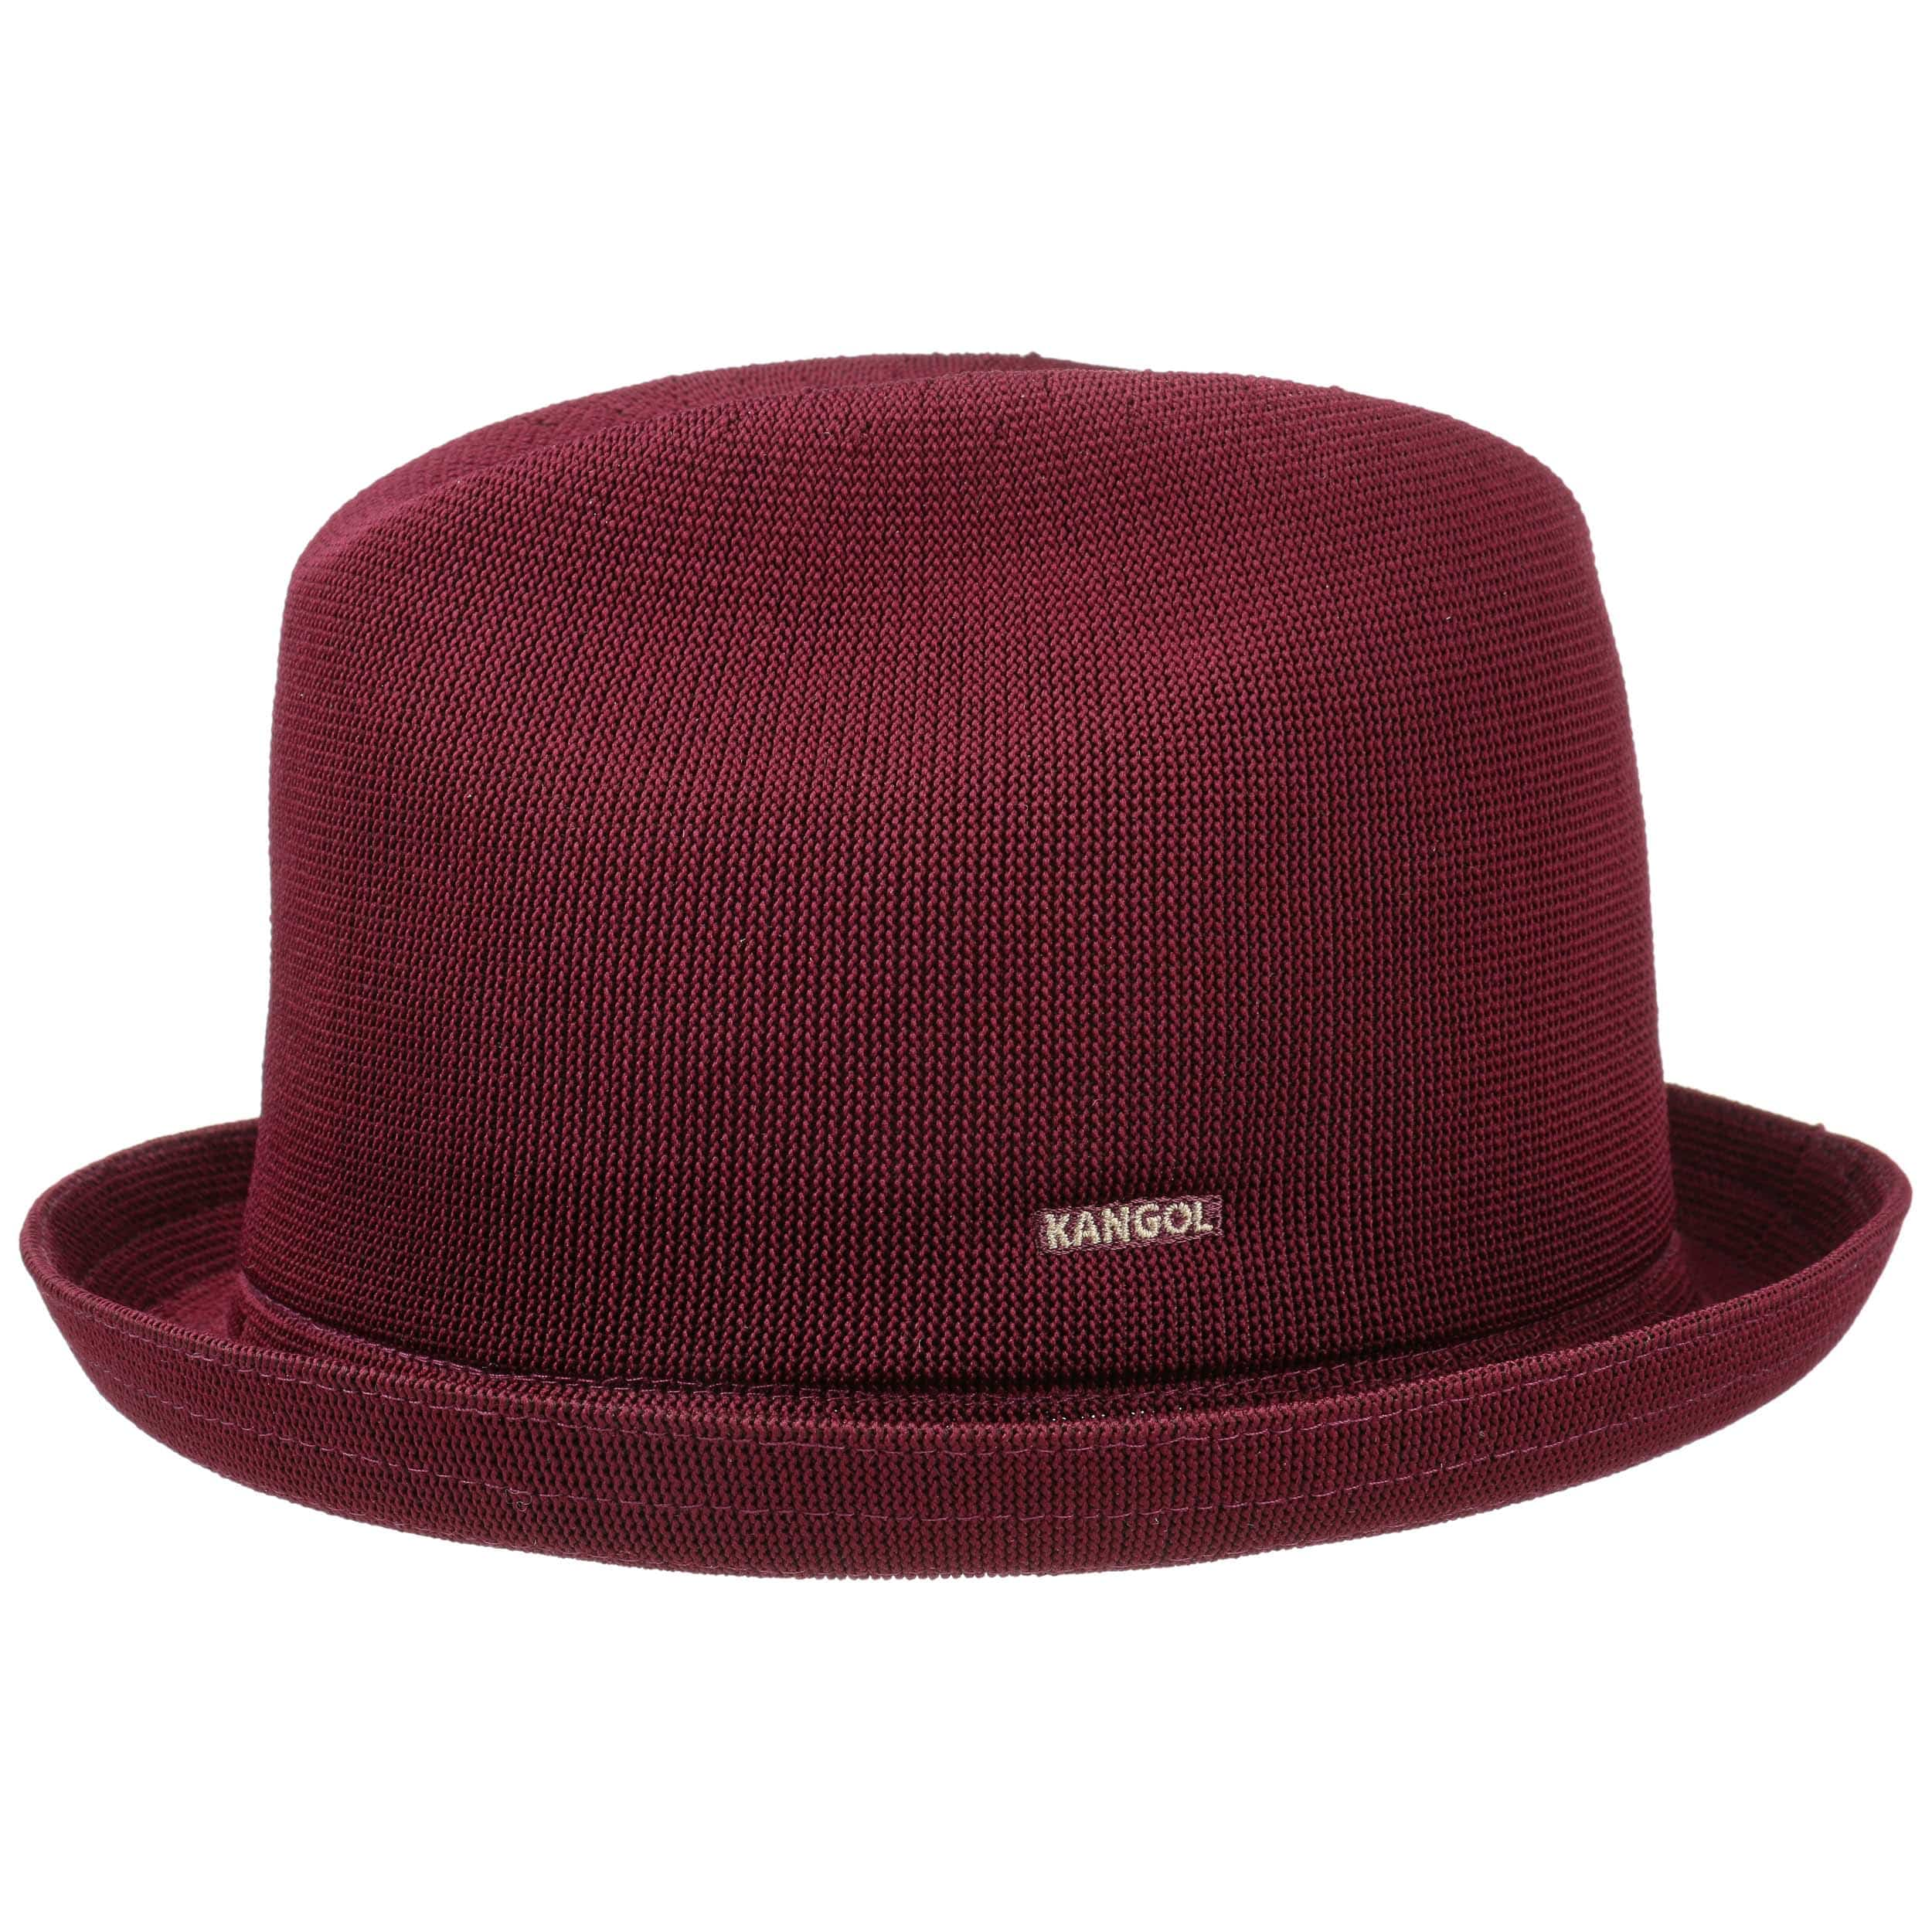 f3ba656d583 ... Kangol Tropic Player Hat - bordeaux 4 ...